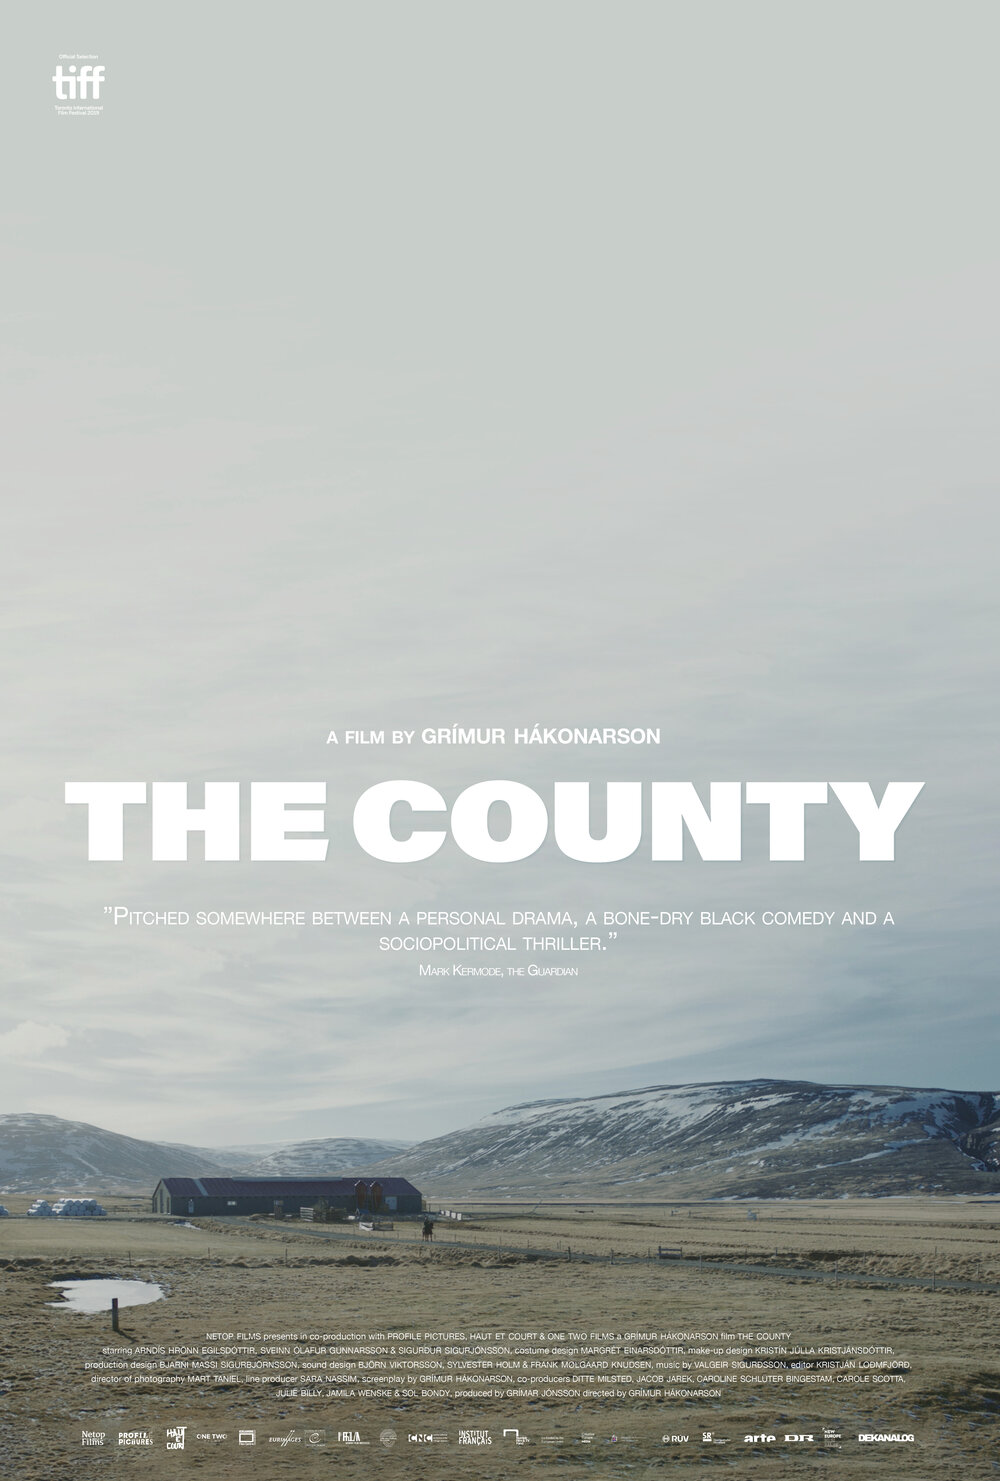 THE COUNTY